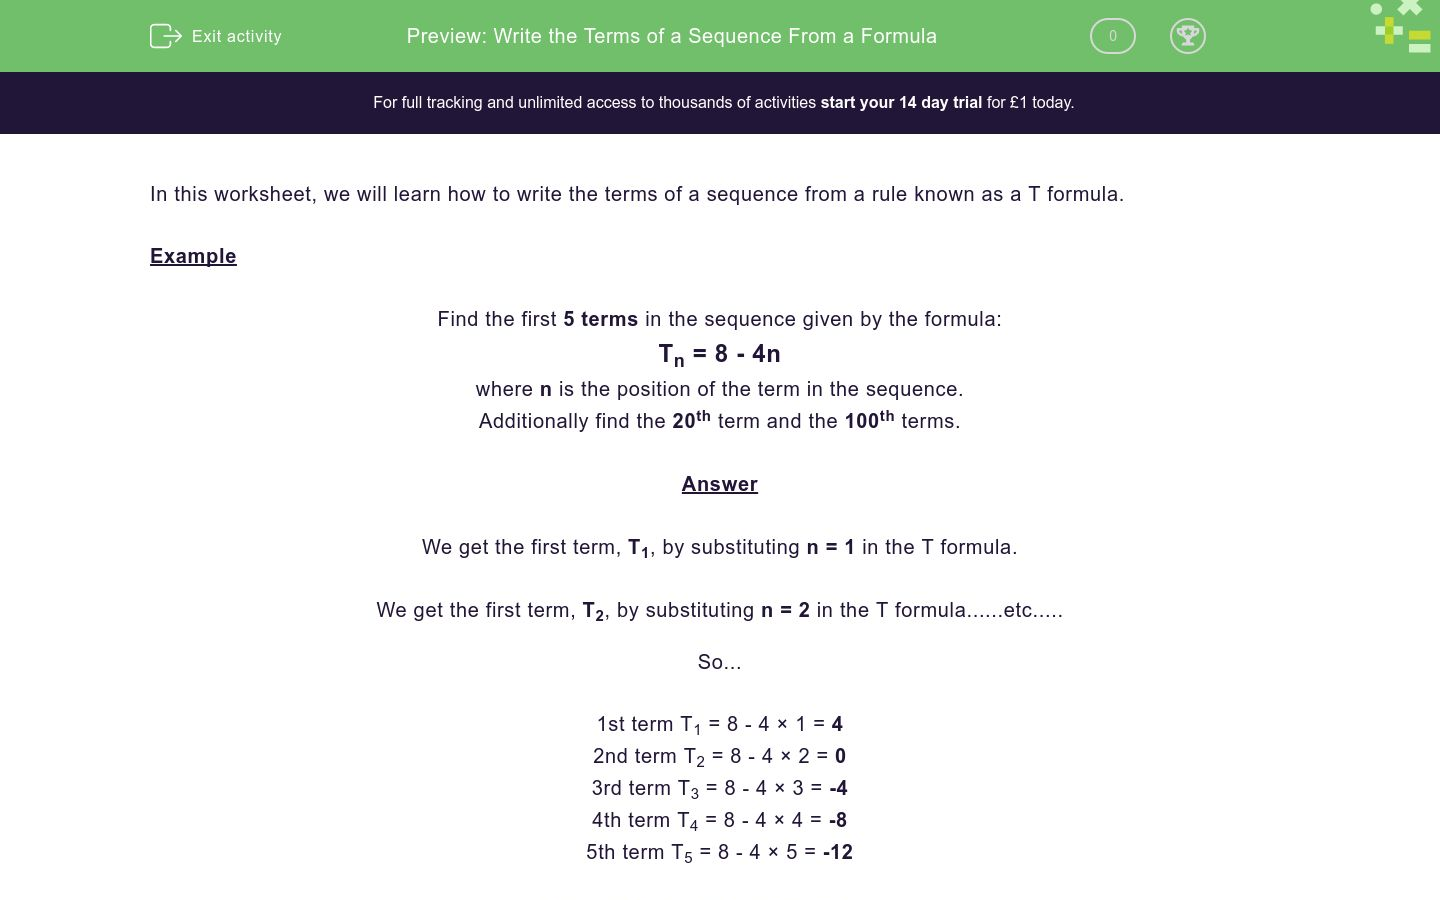 'Write the Terms of a Sequence From a Formula' worksheet